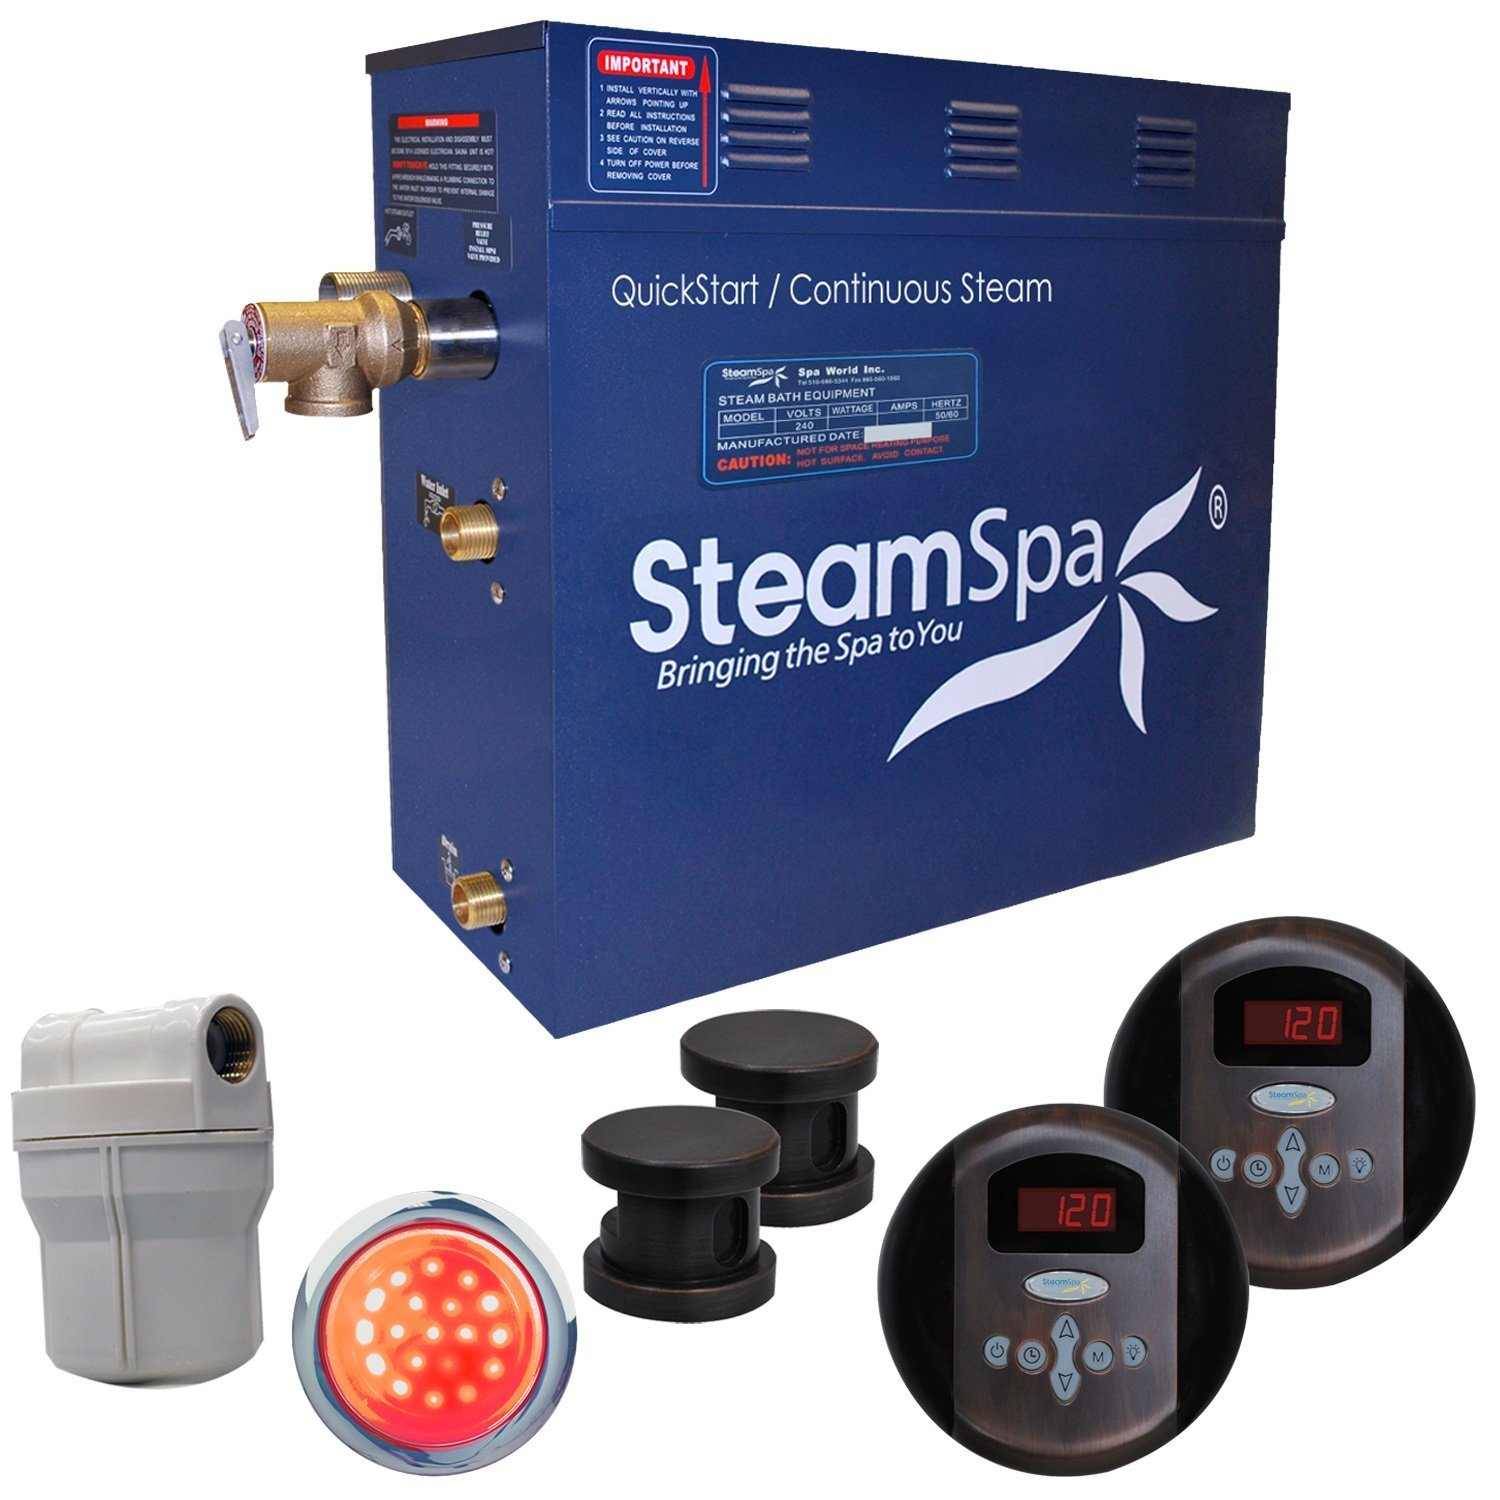 Steam Spa RY1050OB Royal 10.5 KW Quick Start Acu-Steam Bath Generator Package, Oil Rubbed Bronze